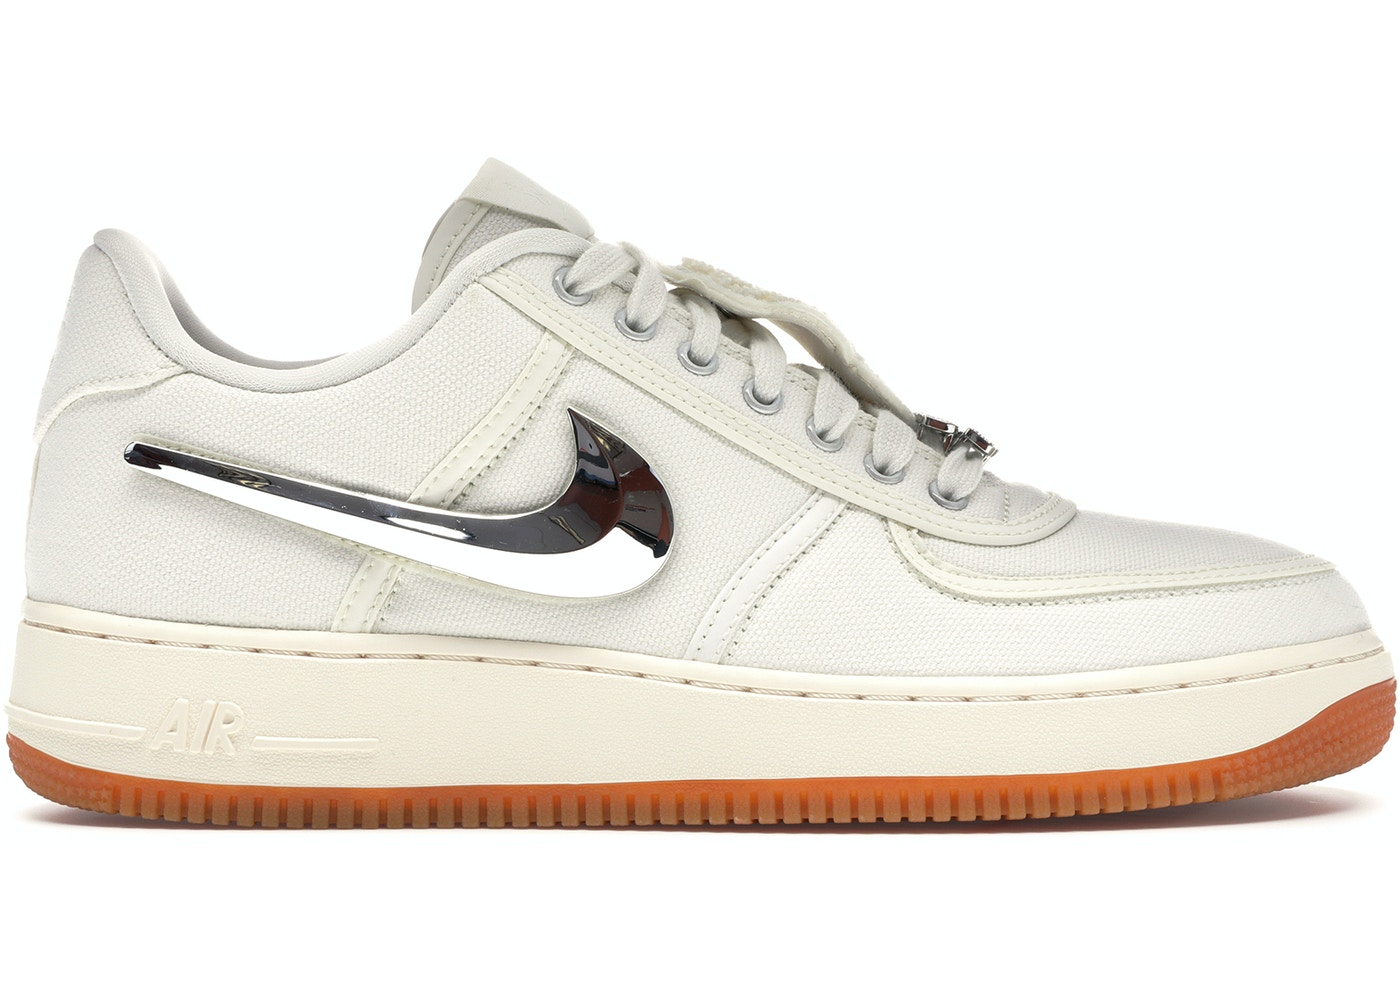 separation shoes dd0fc 80b85 Air Force 1 Low Travis Scott Sail - AQ4211-101